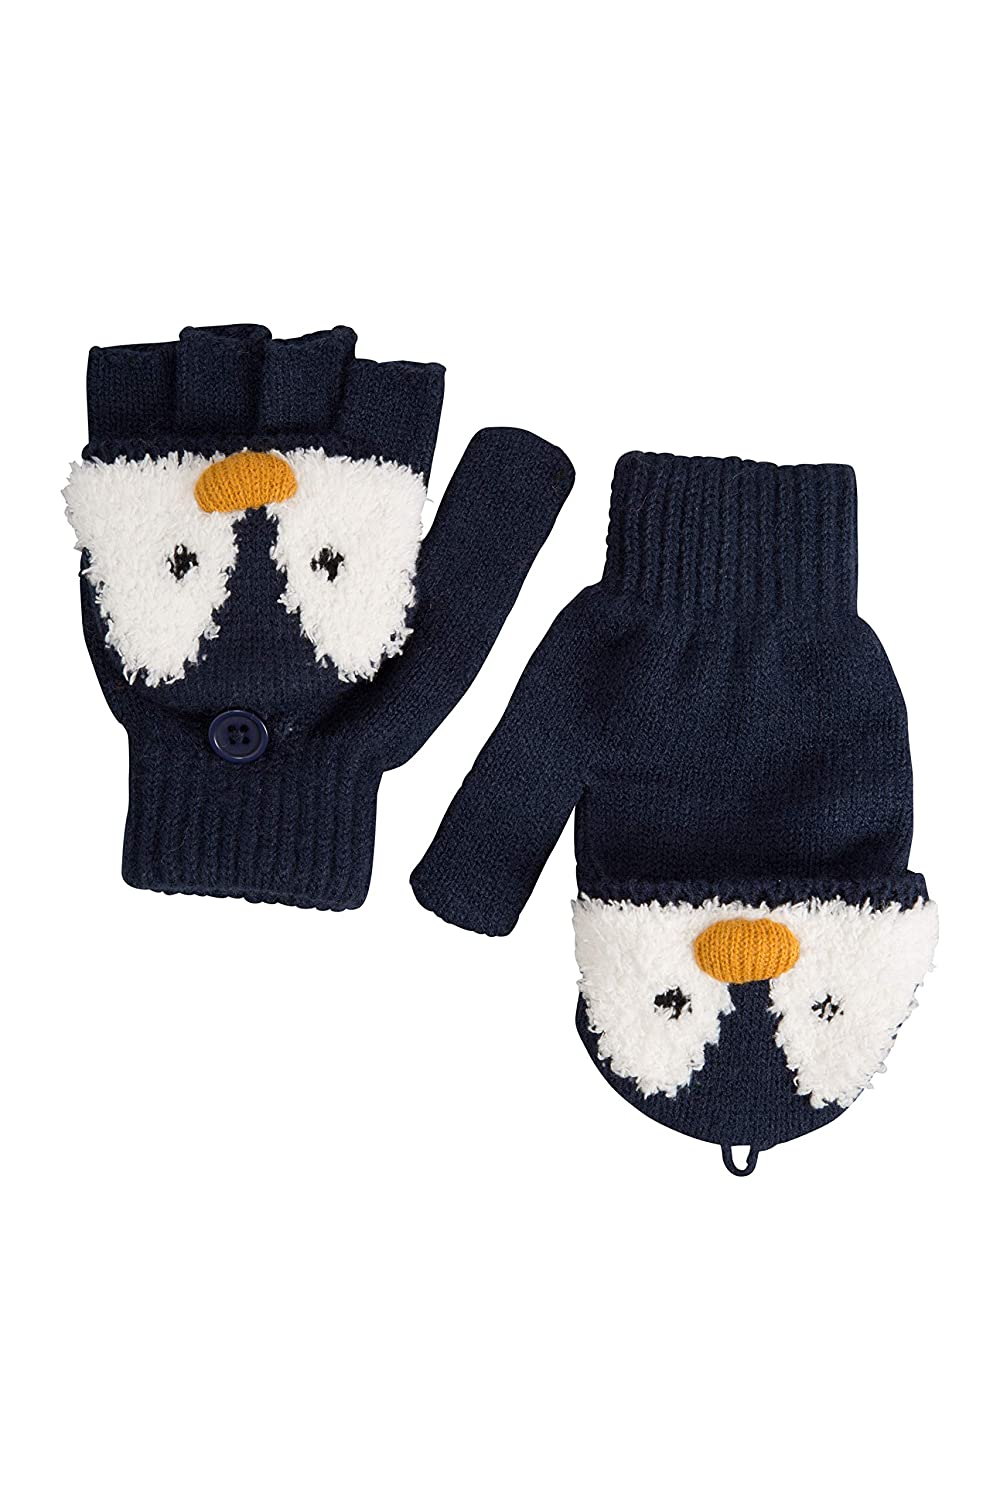 Mountain Warehouse Penguin Knitted Kids Glove - Warm, Lightweight, Knitted & Elasticised Band, Stretches for a Comfortable Fit - Great When Out & About Blue